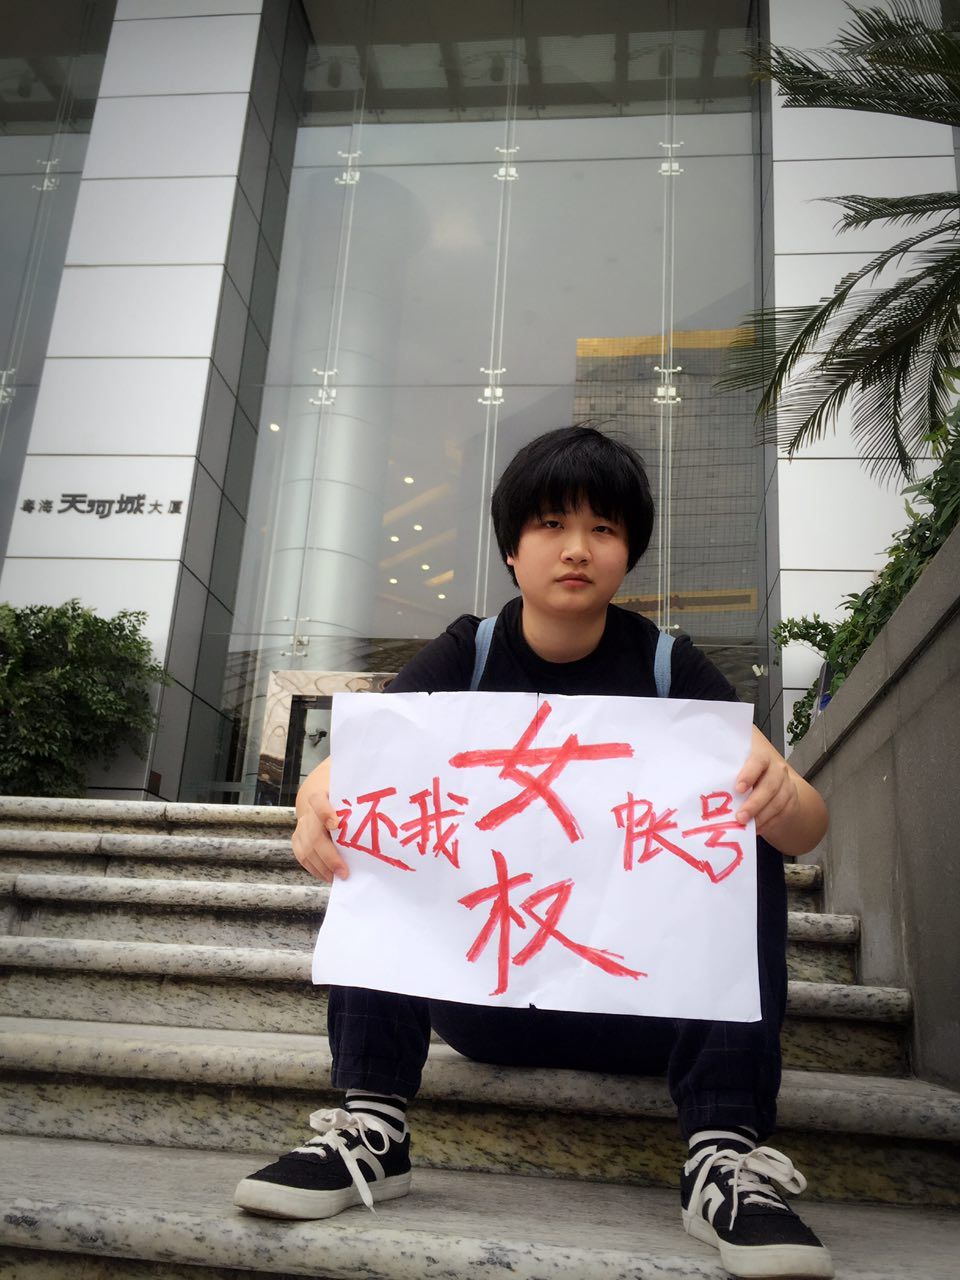 Zhang Leilei in front of Sina Corporation Guangzhou branch